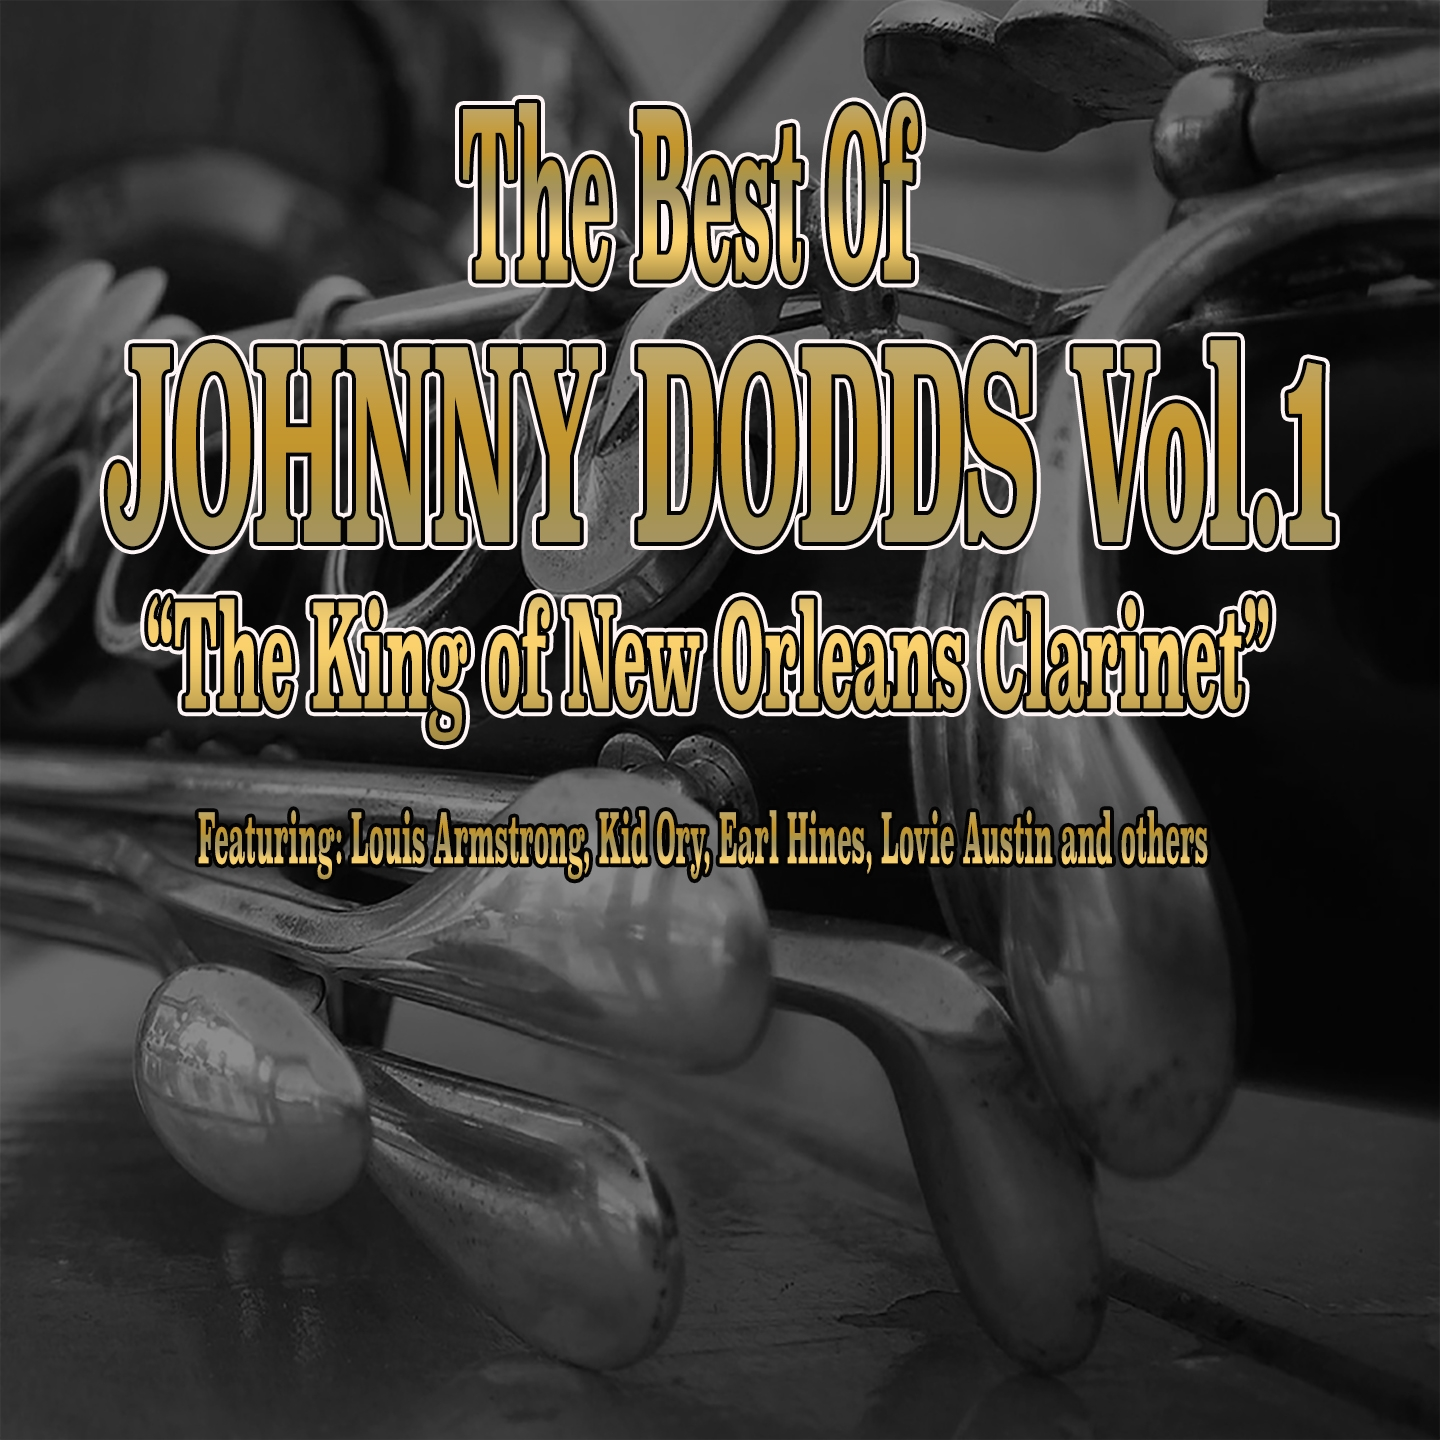 The Best of Johnny Dodds Vol. 1 - Perdido Street Blues, Gate Mouth, Too Tight, And 23 Other Hits